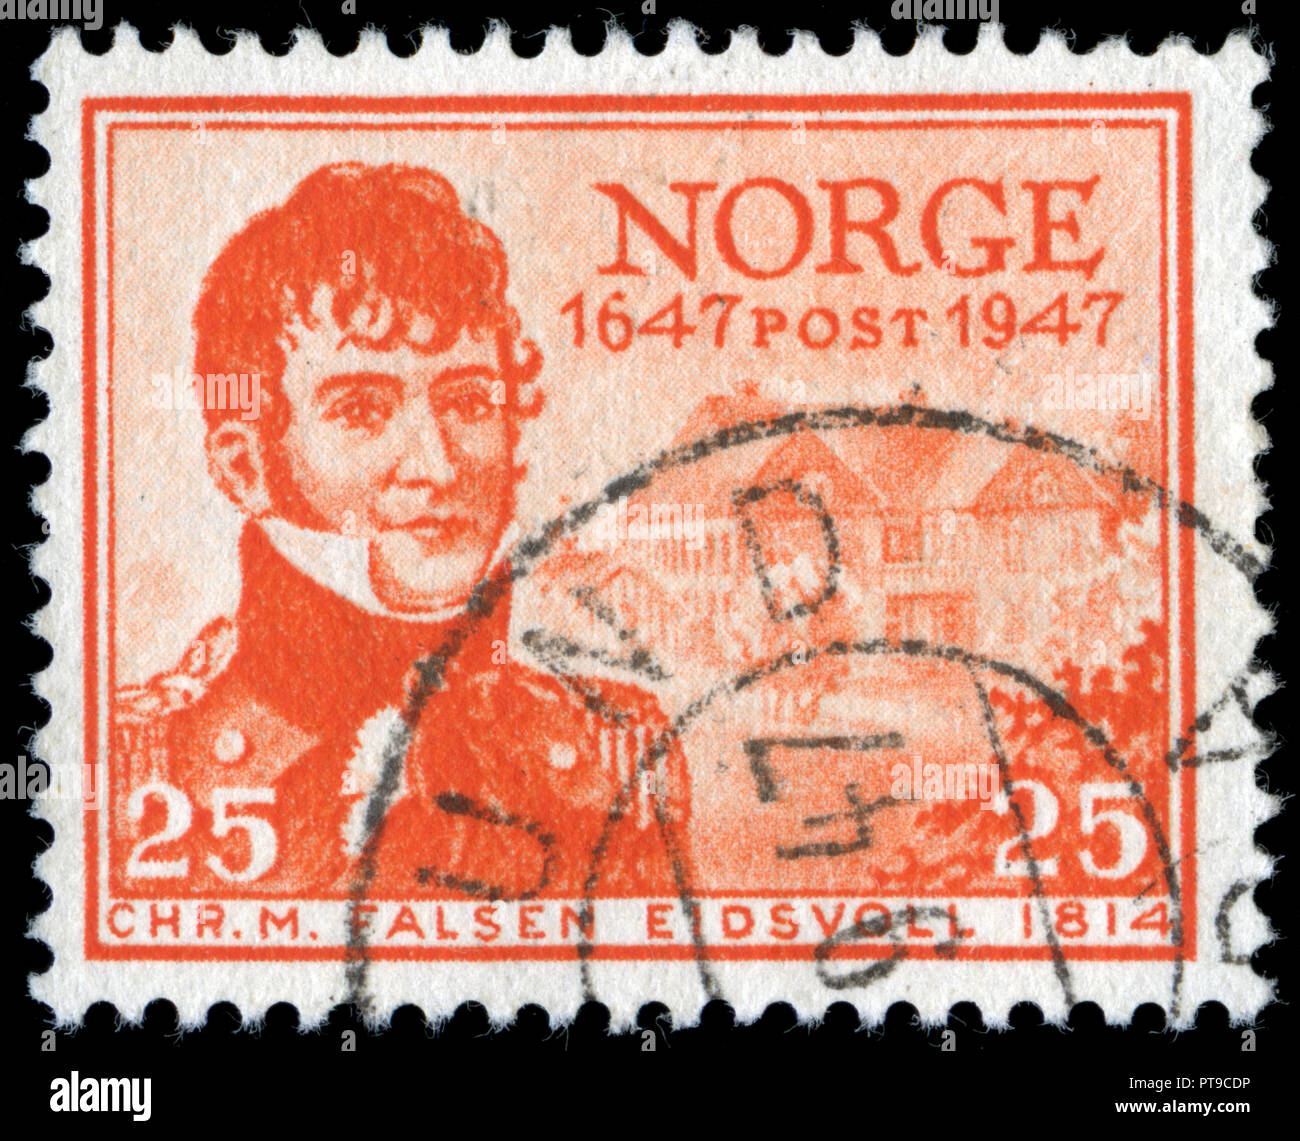 Postmarked stamp from Norway in the Postal Service series issued in 1947 - Stock Image